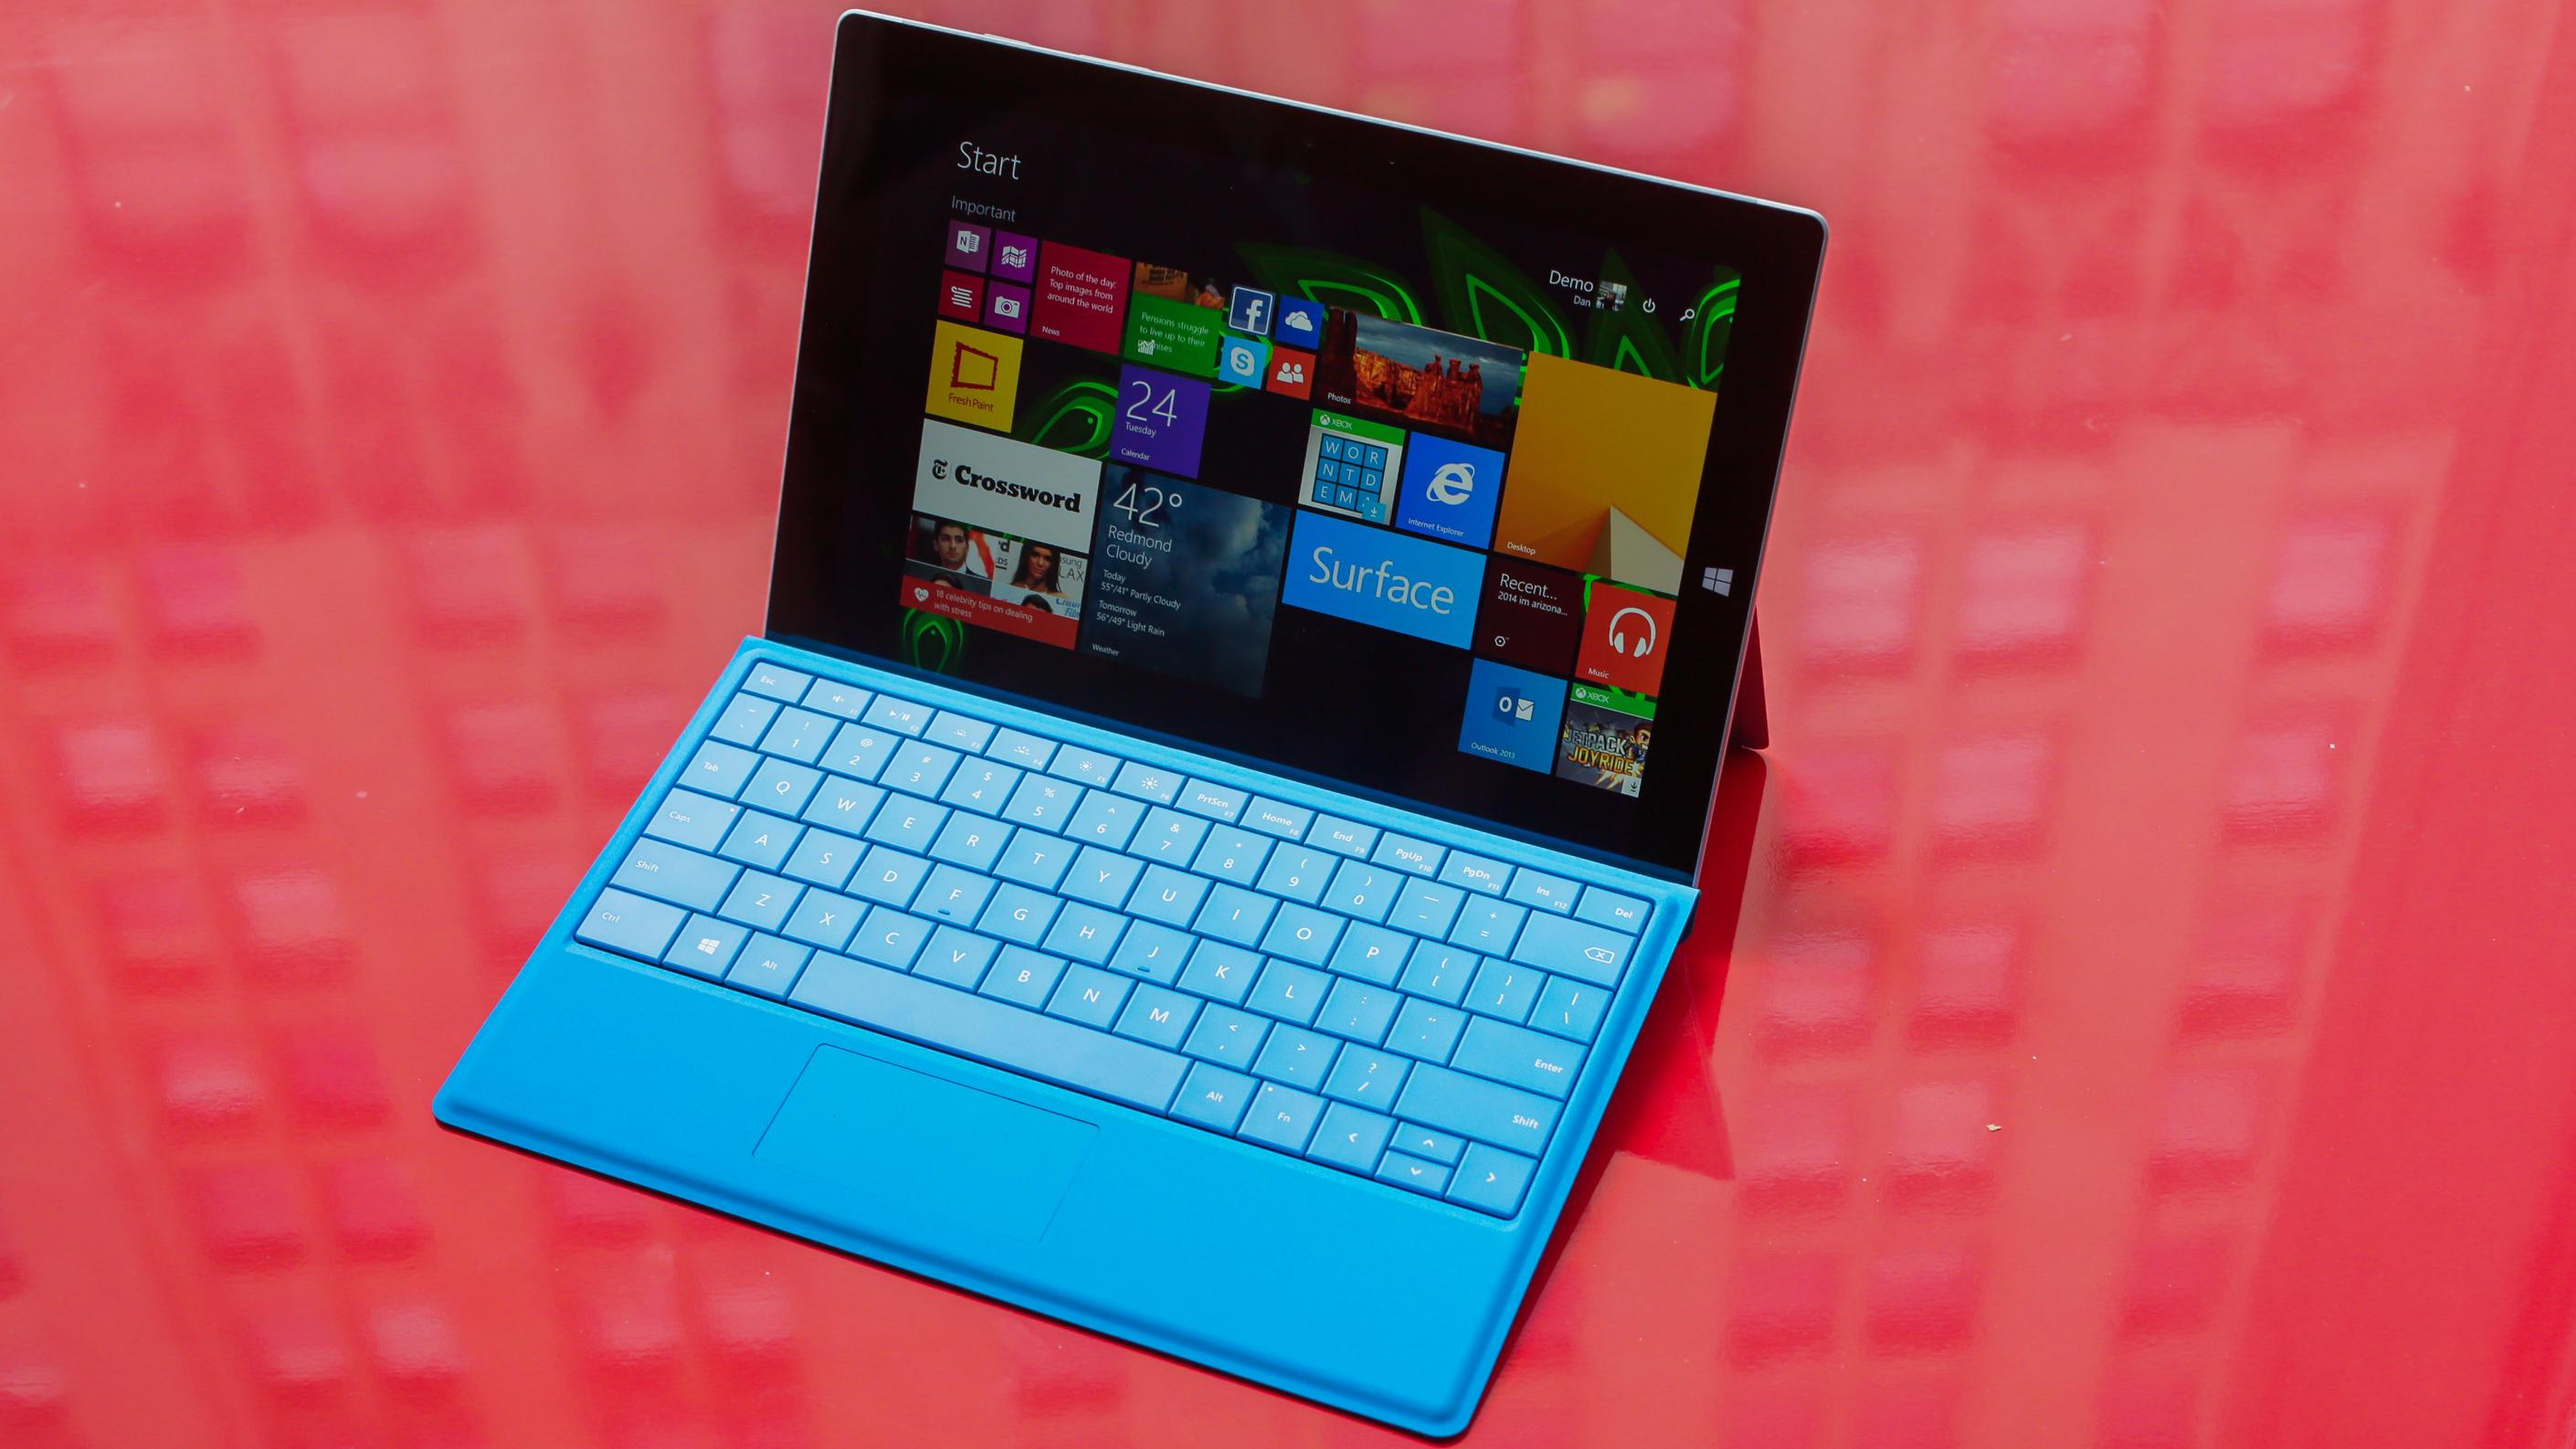 Pricing and availability for Microsoft's Surface 3 in Asia-Pacific region